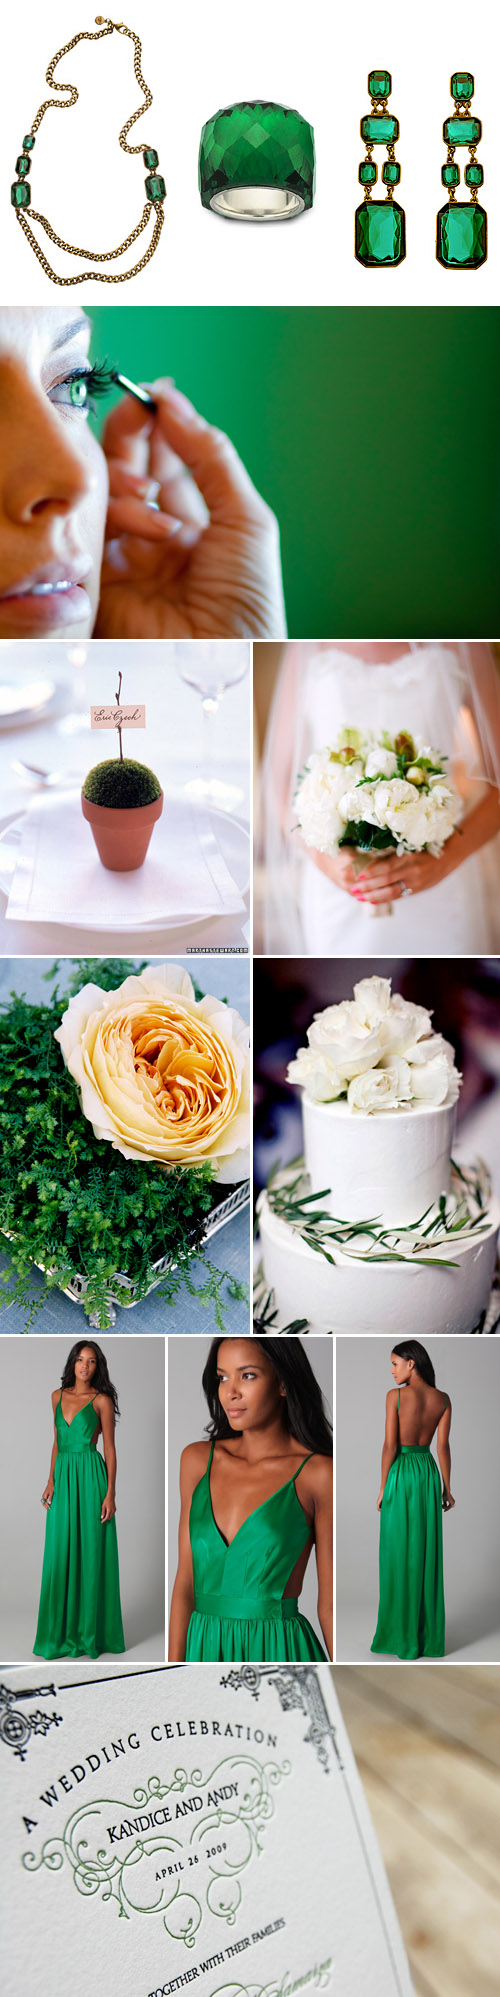 emerald green wedding color ideas and inspiration, green wedding decor, fashion and jewelry